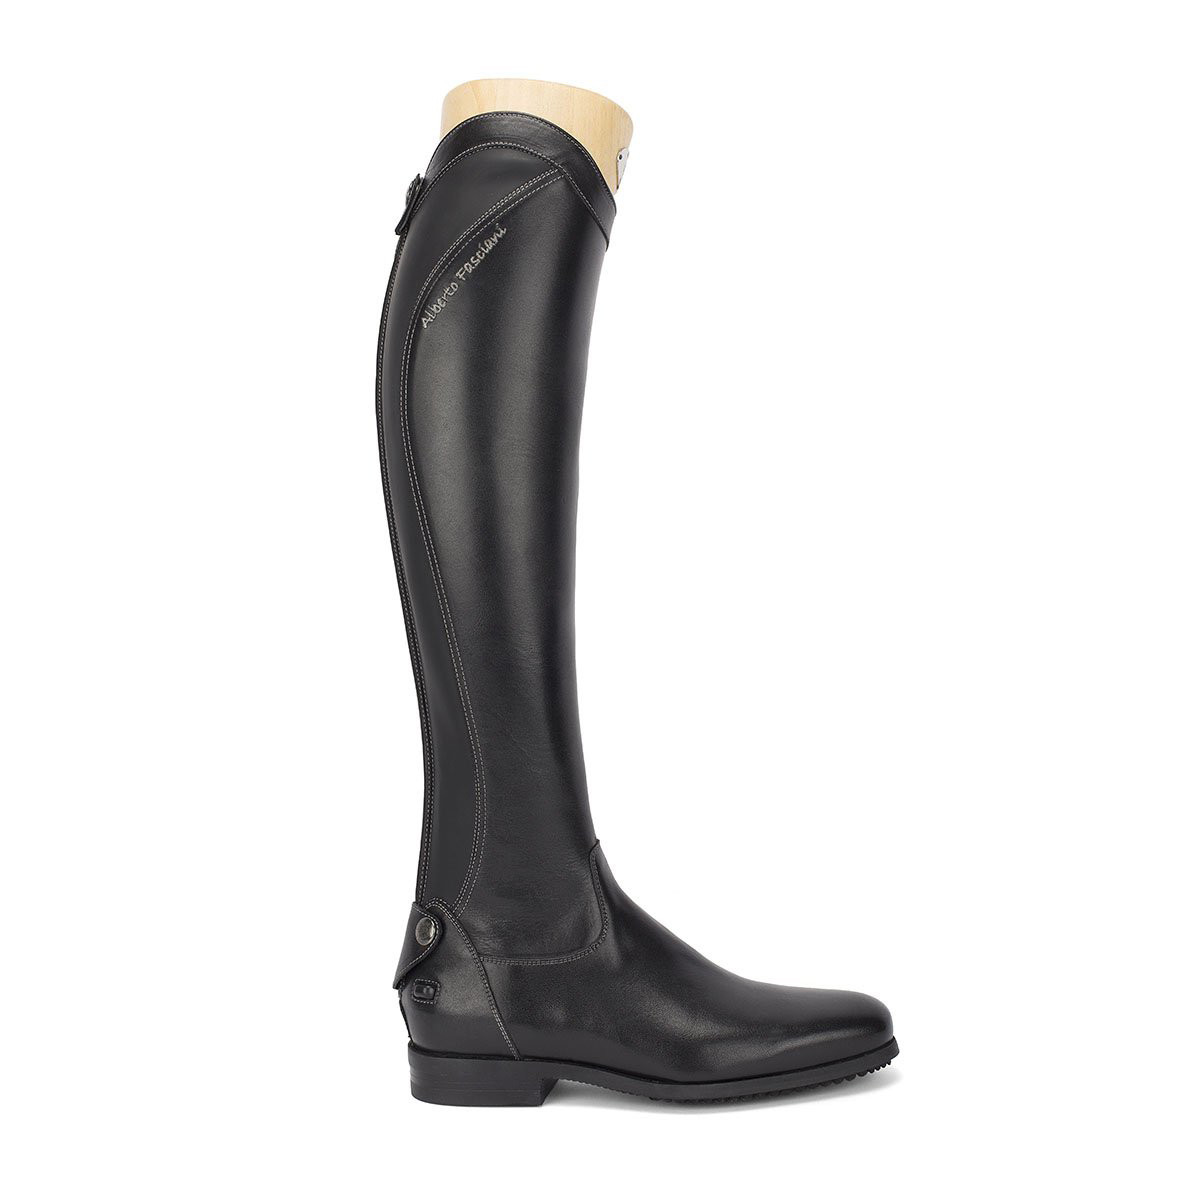 Alberto Fasciani Technical Riding Boots